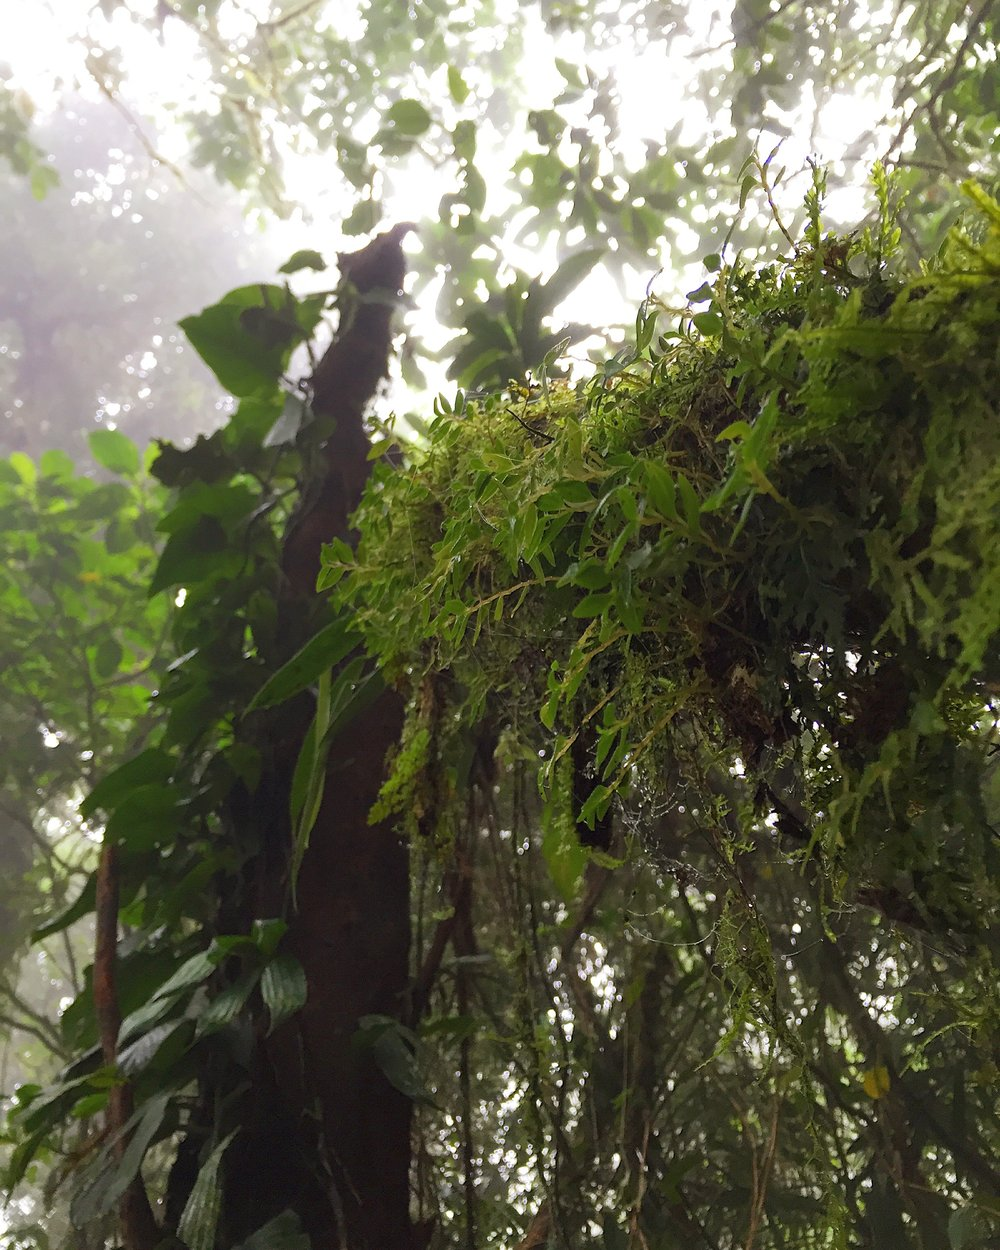 Plant diversity drives soil feedbacks. Check out the epiphyte diversity in Central America.